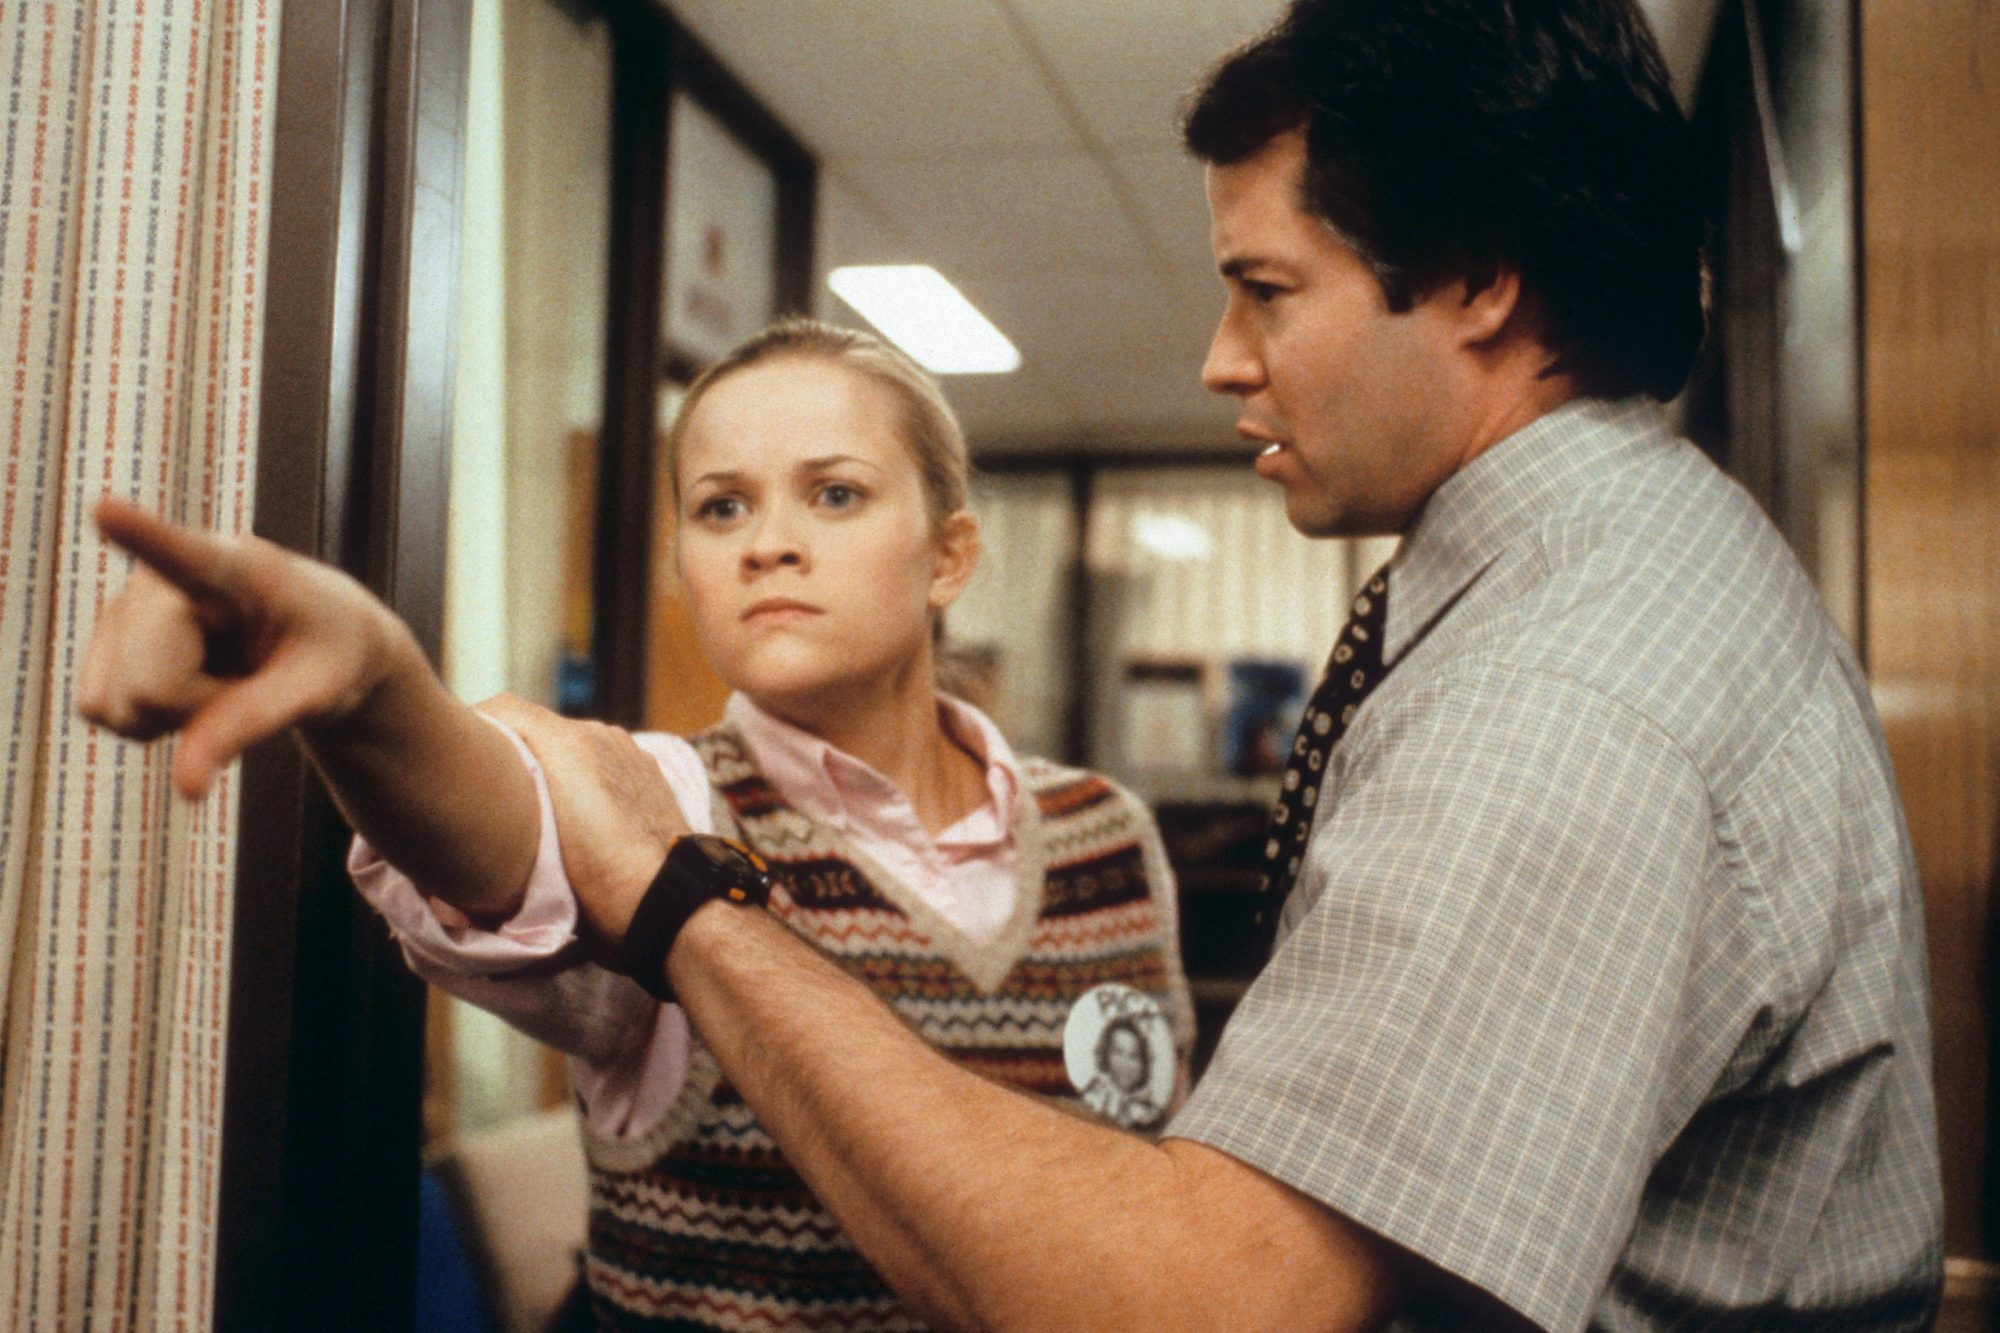 ELECTION, Reese Witherspoon, Matthew Broderick, 1999 CR: Everett Collection